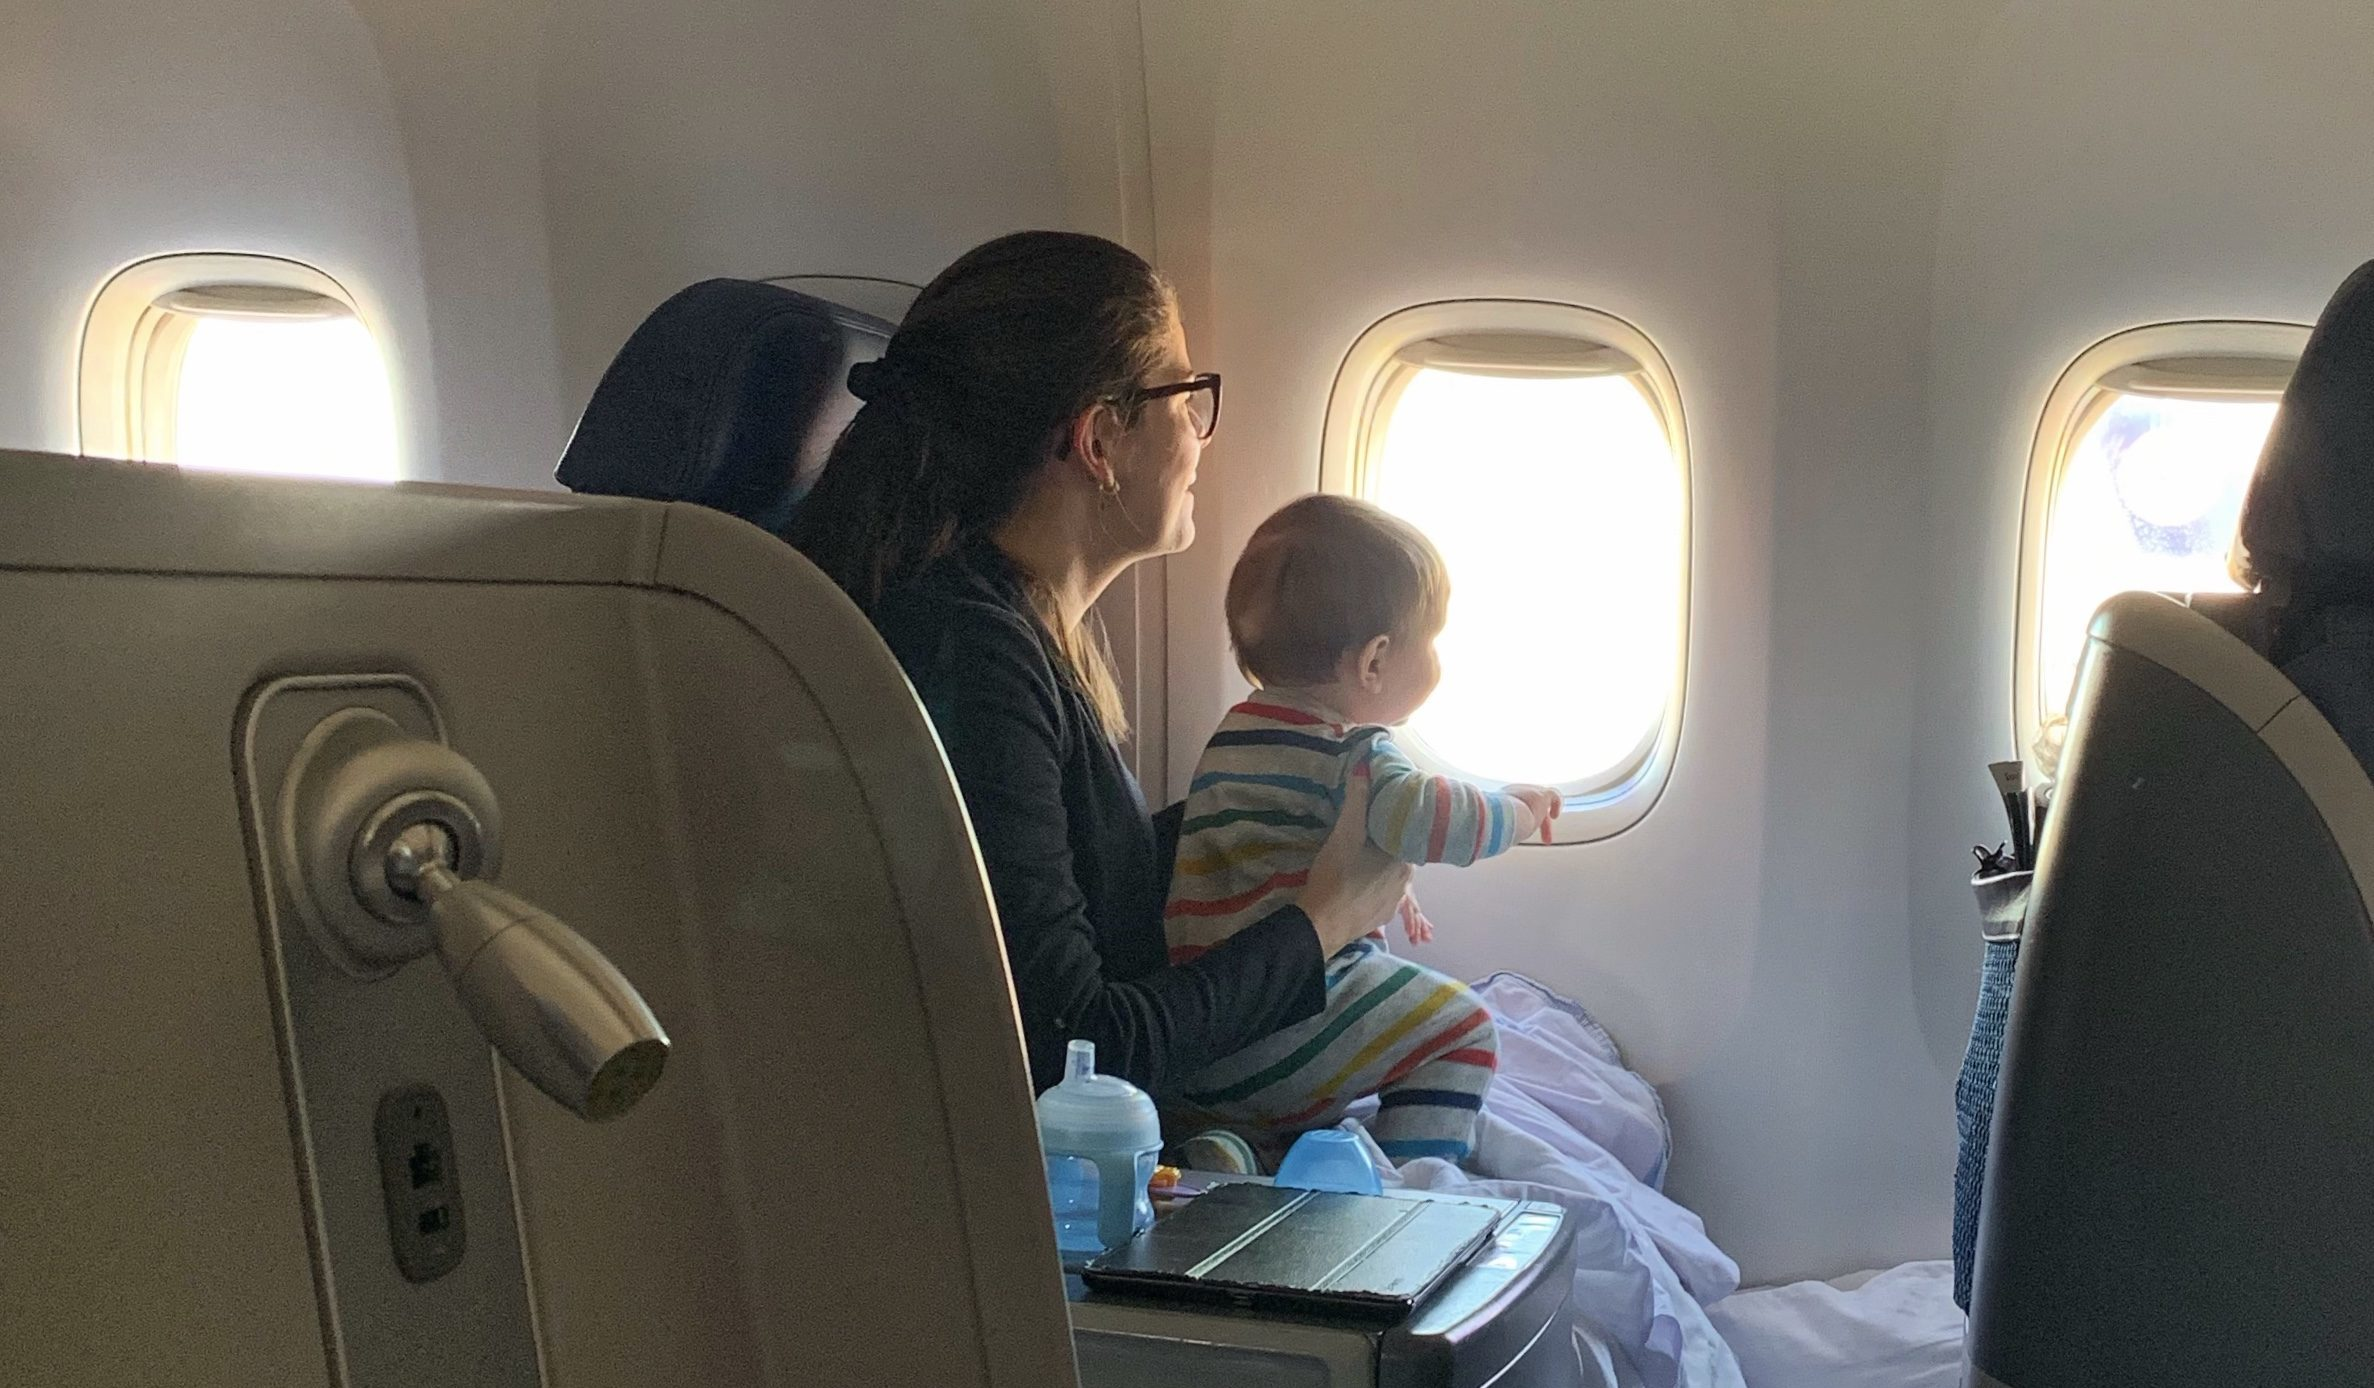 Baby Cot United Airlines The Pros And Cons Of Flying Business Class With A Baby 2019